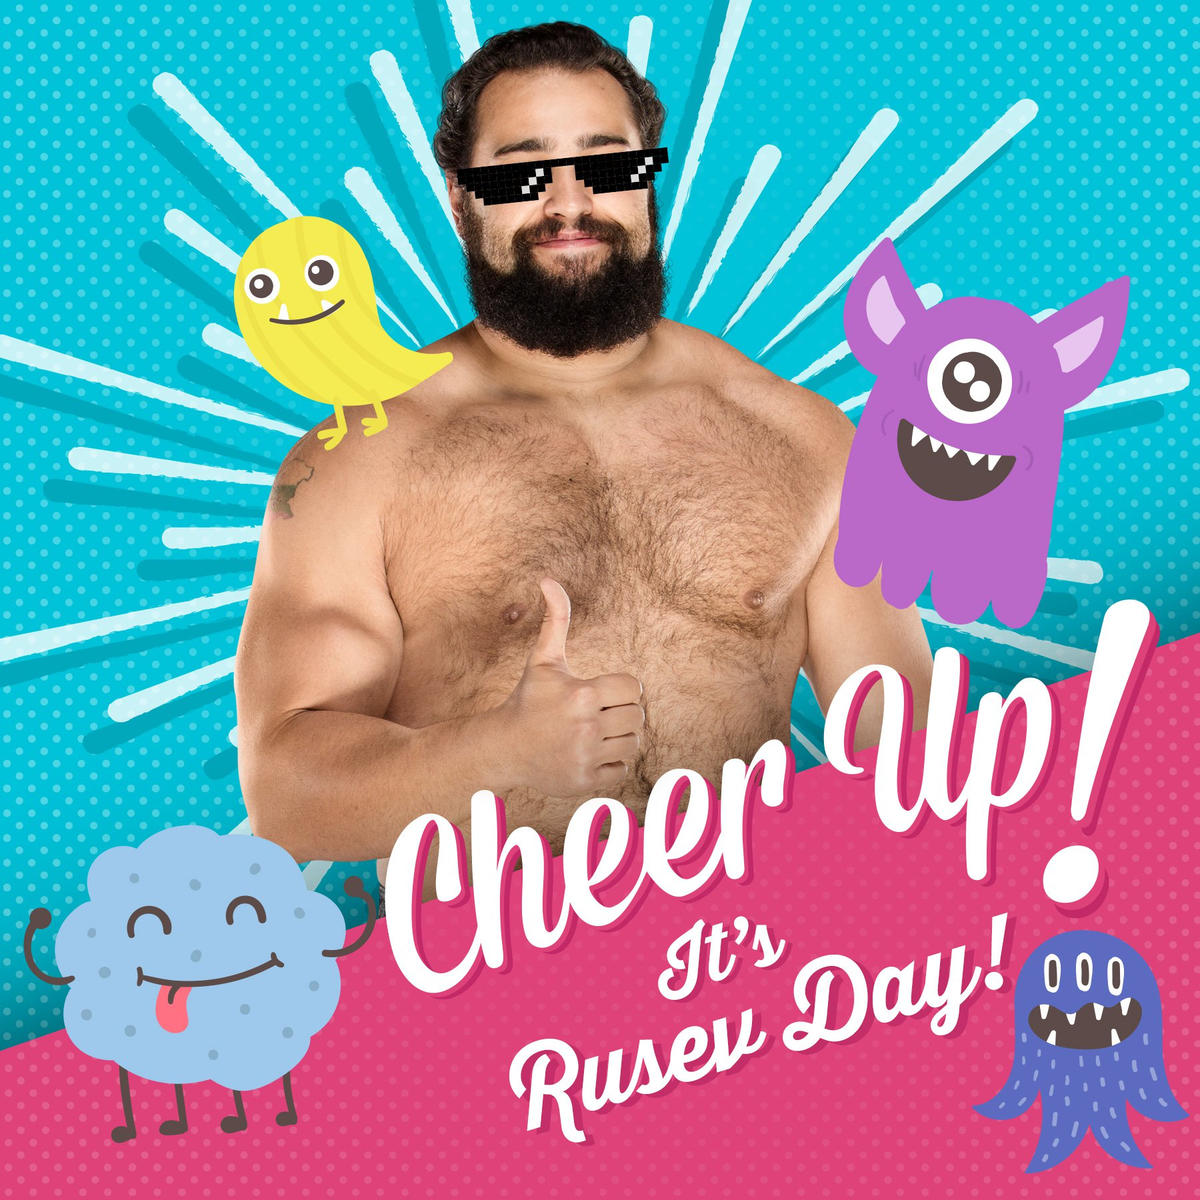 Rusev Day Greeting Cards Wwe